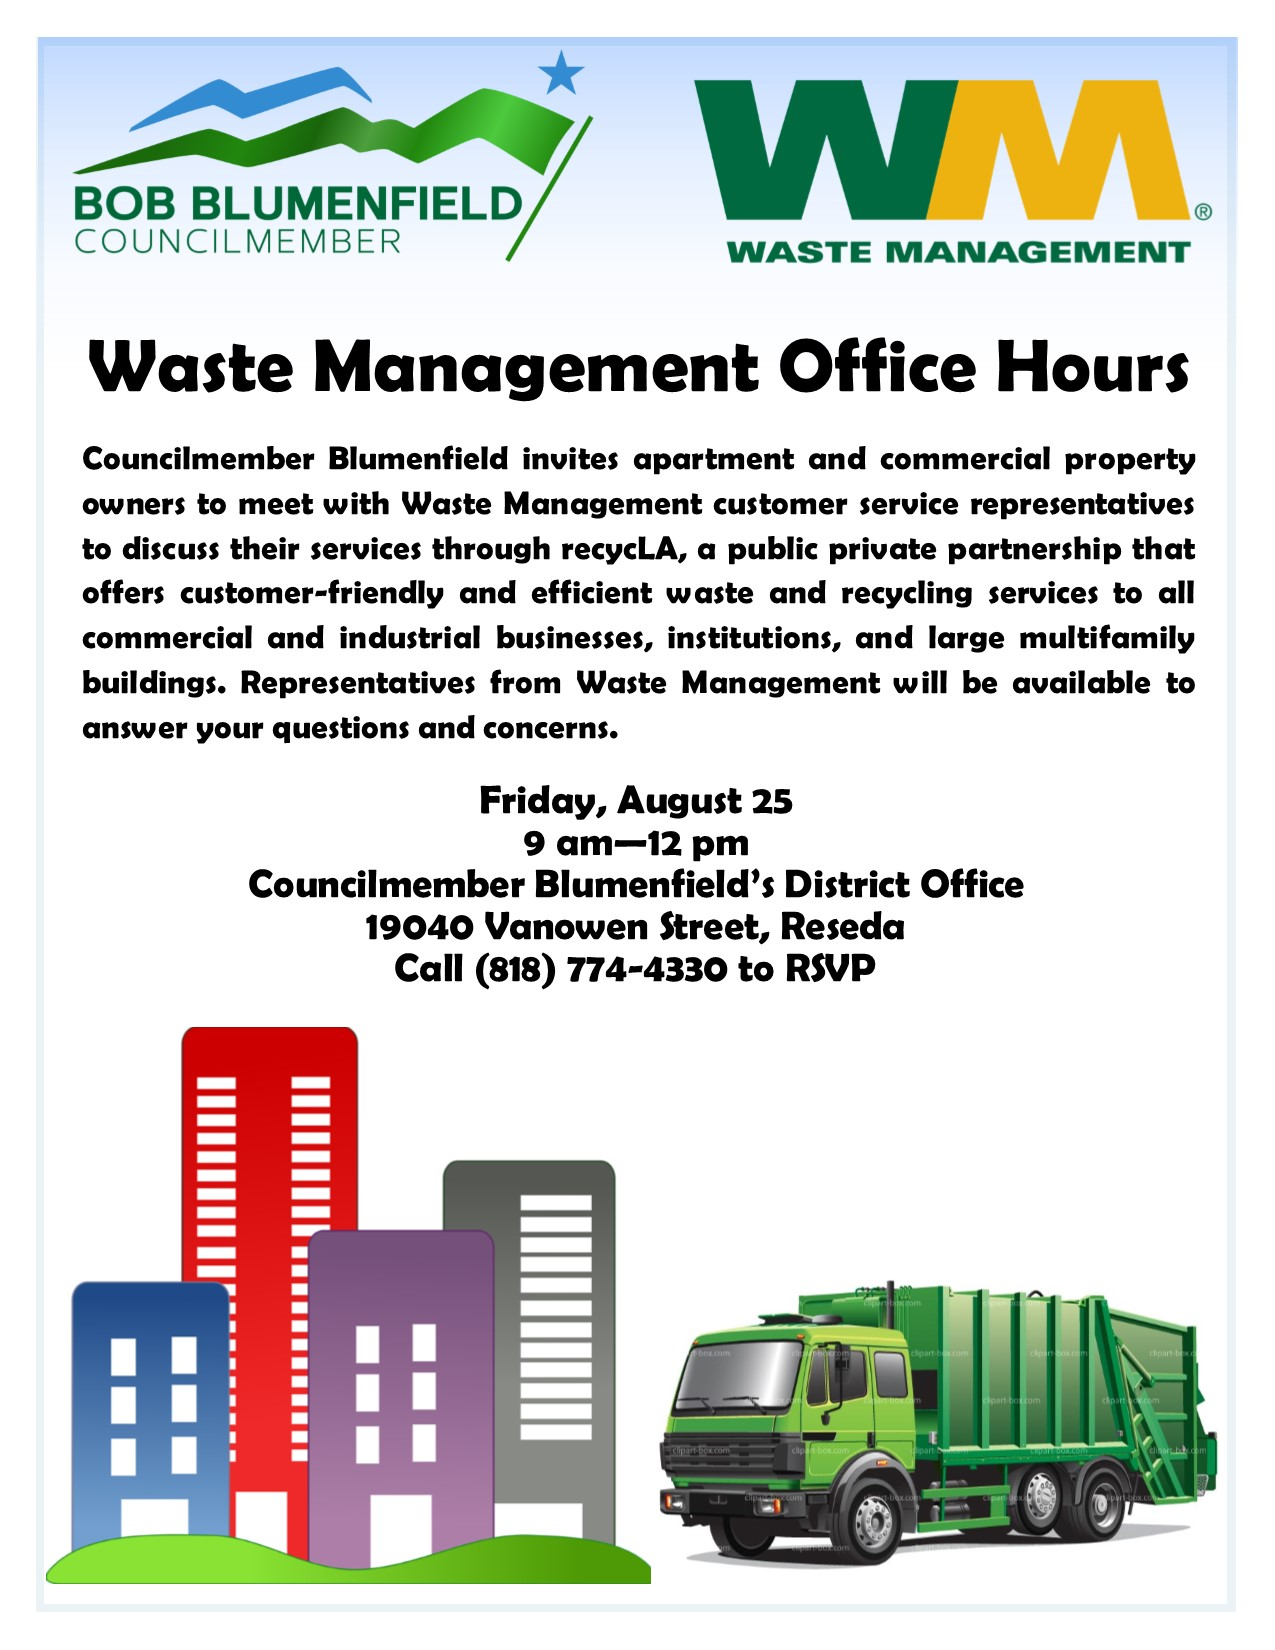 Waste_Management_Office_Hours_Flyer.jpg